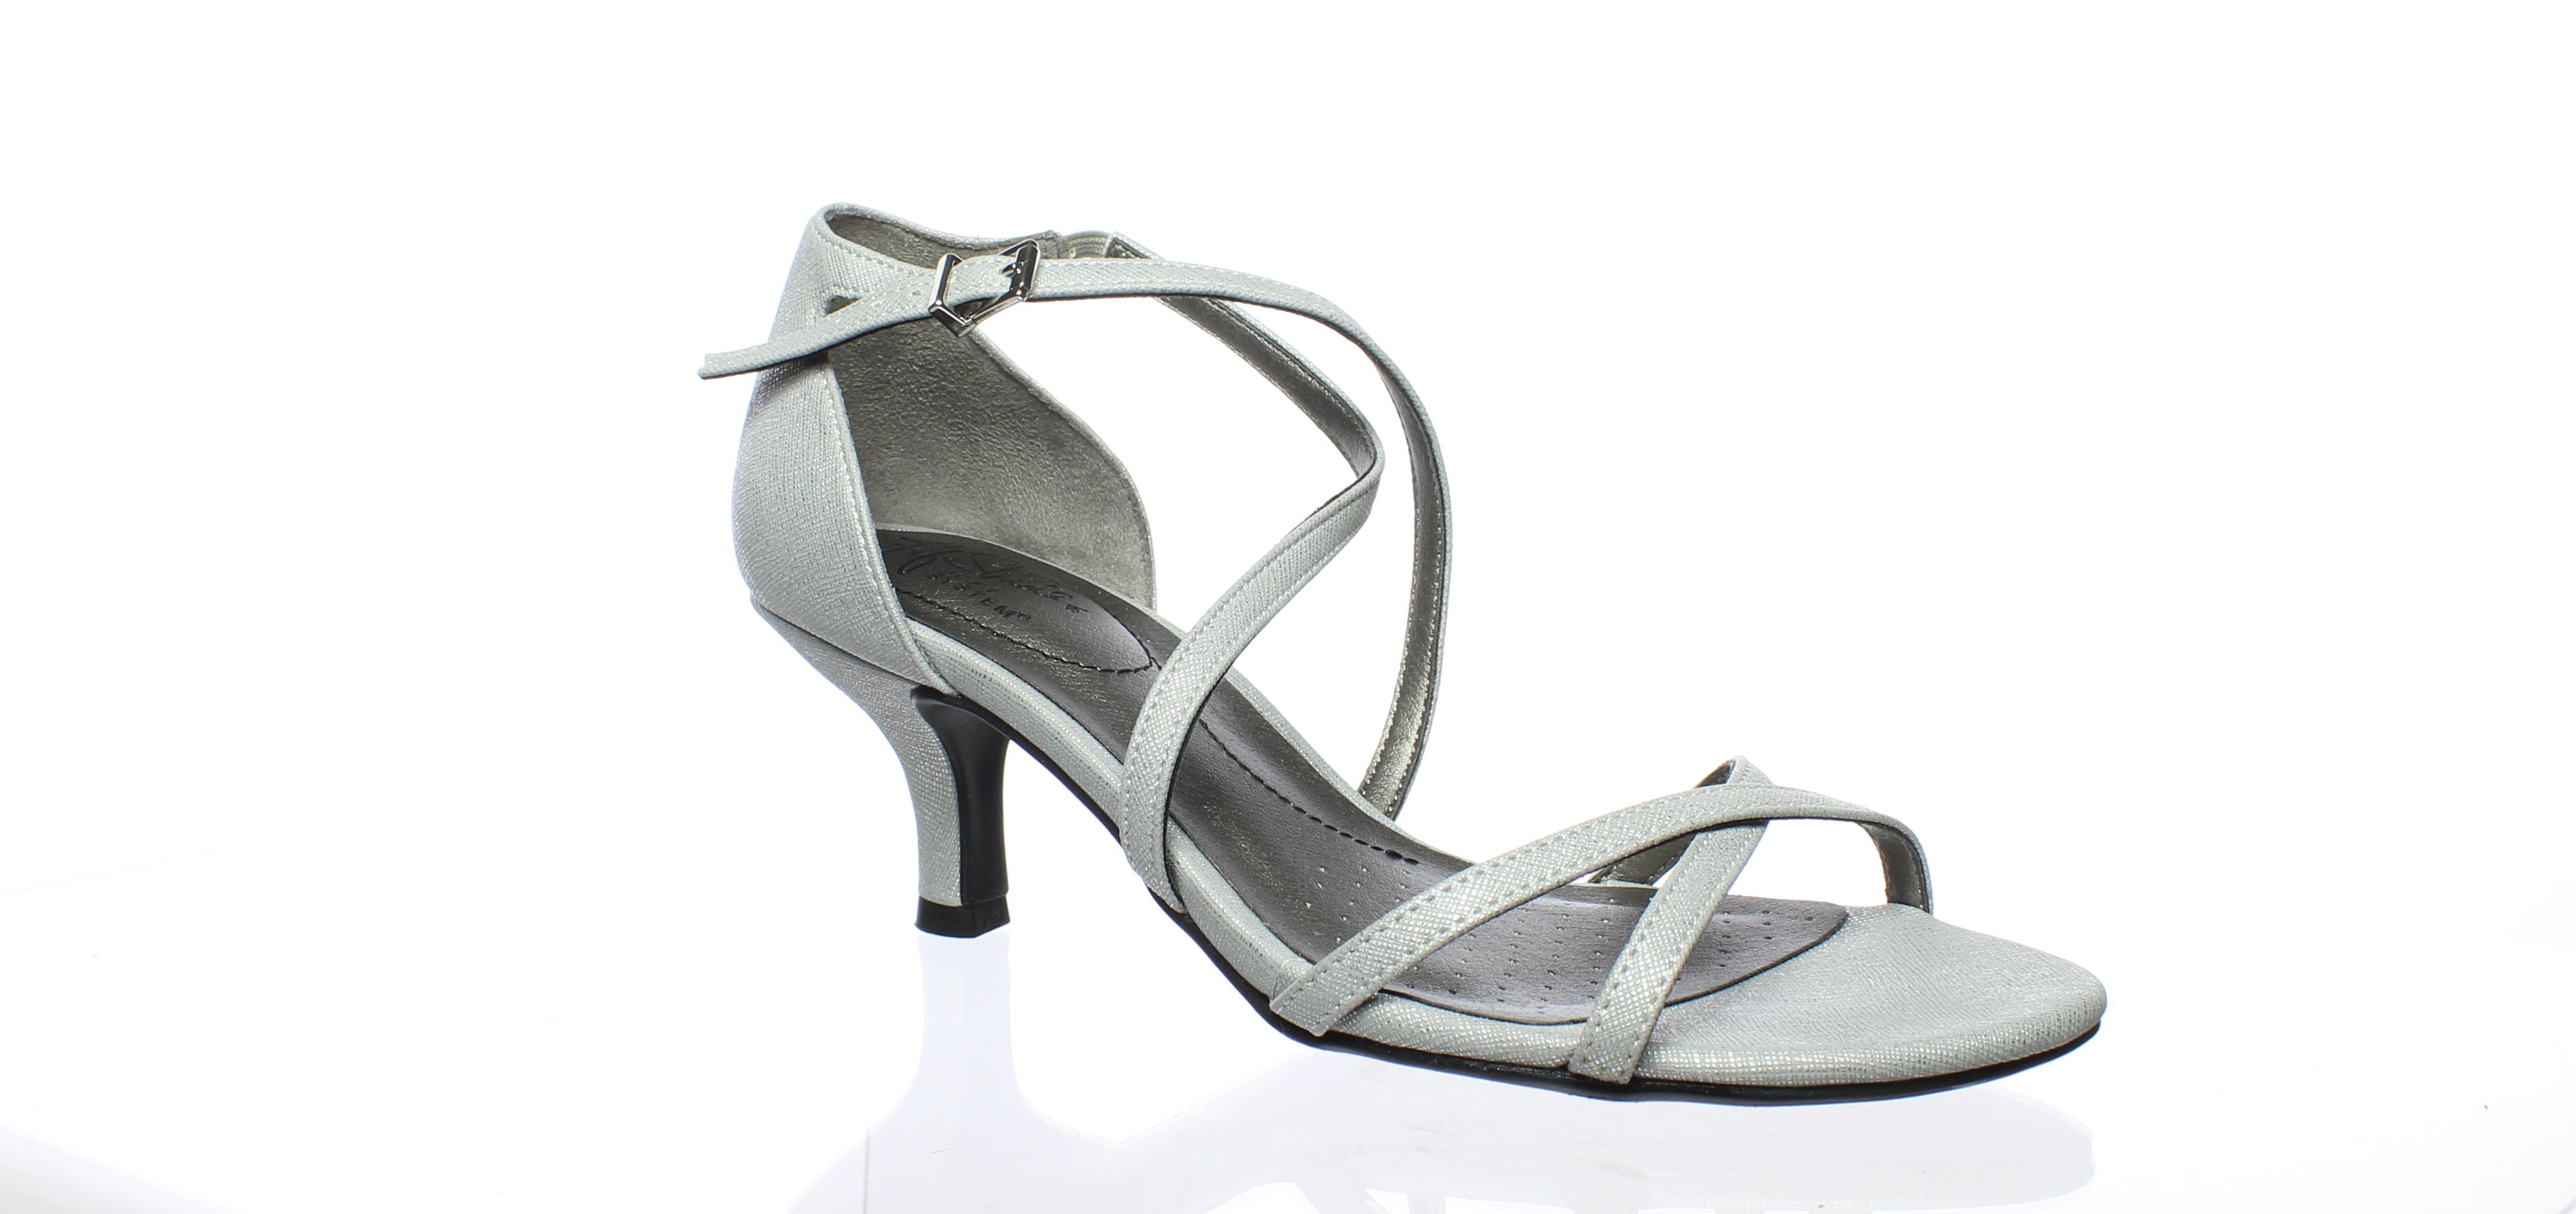 84f5d552822 LifeStride Womens Flaunt Silver Ankle Strap Heels Size 7 (187560)